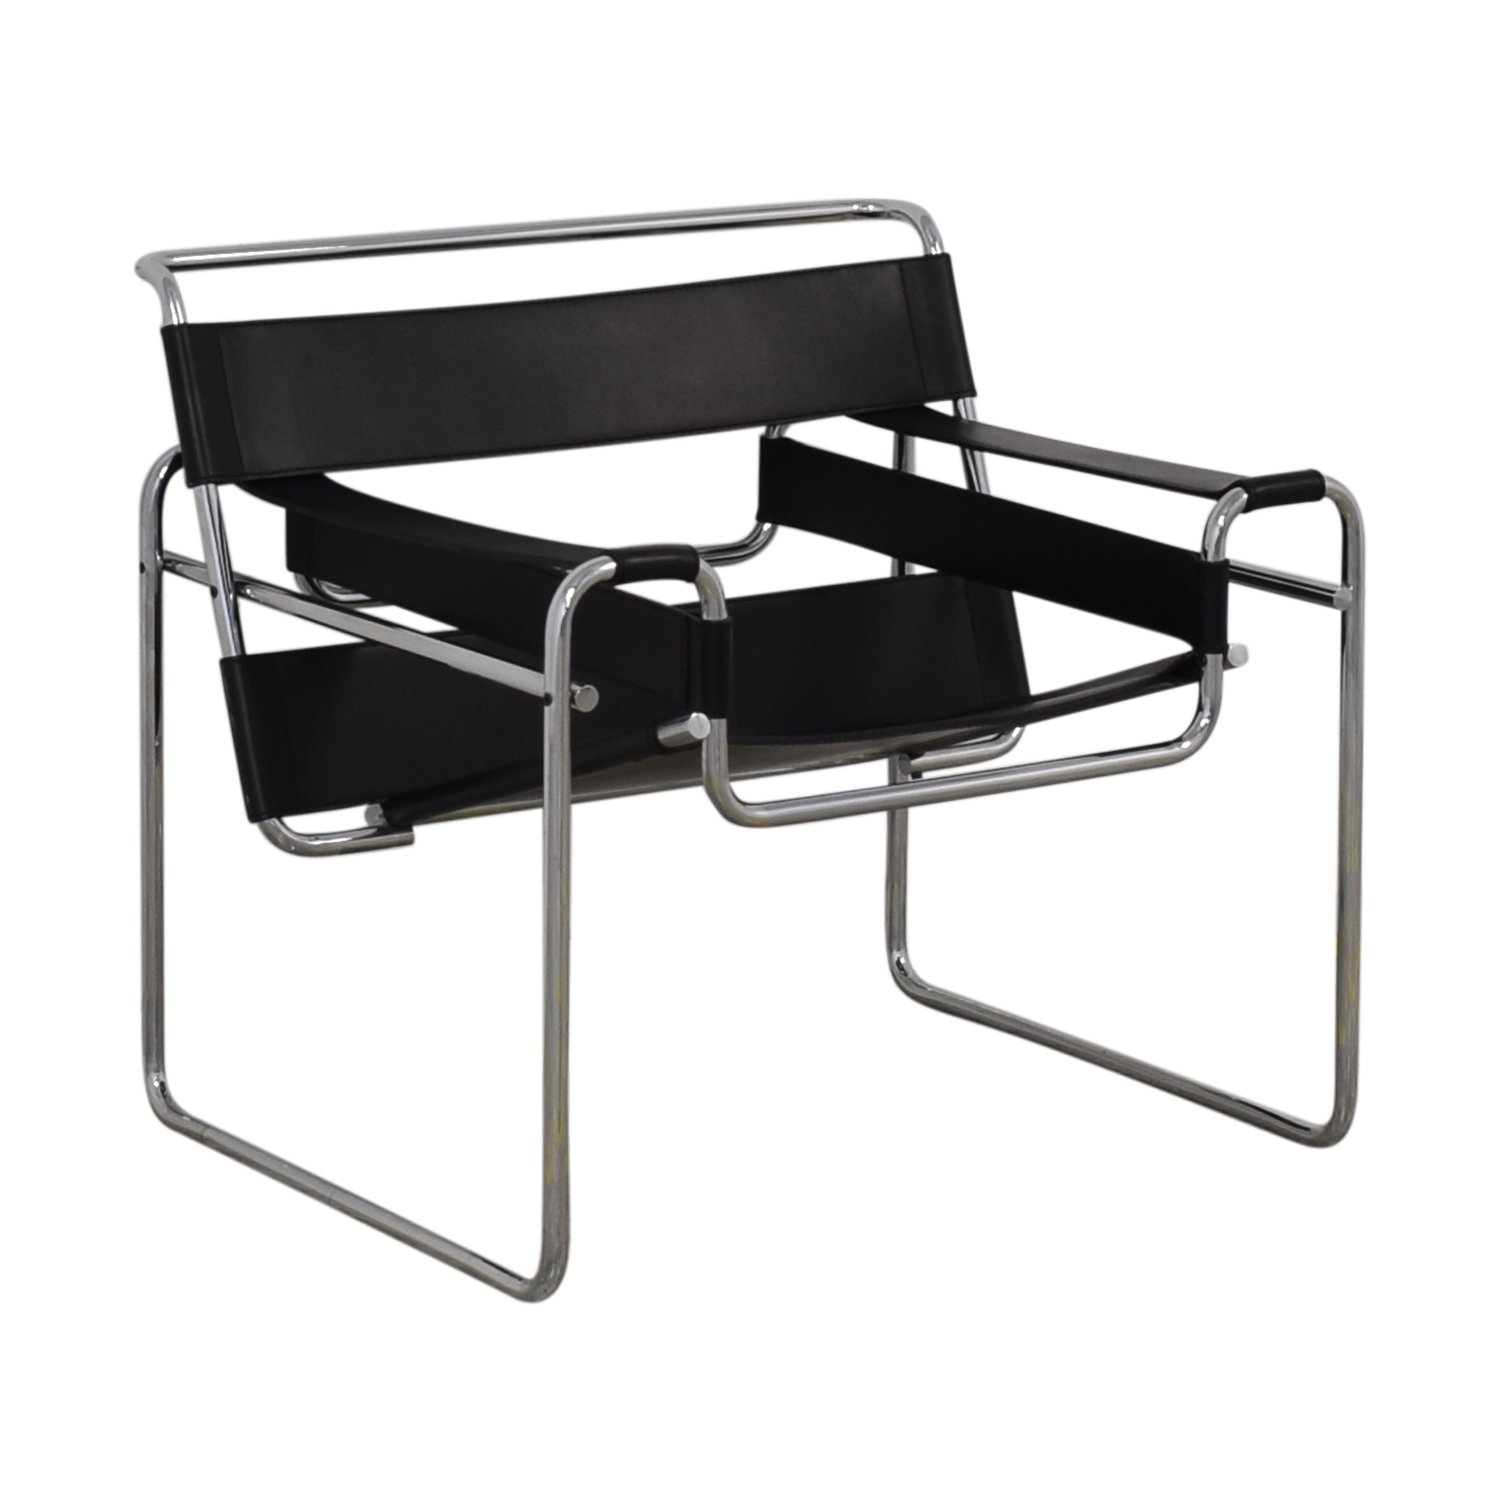 Knoll Knoll Marcel Breuer Wassily Chair Chairs